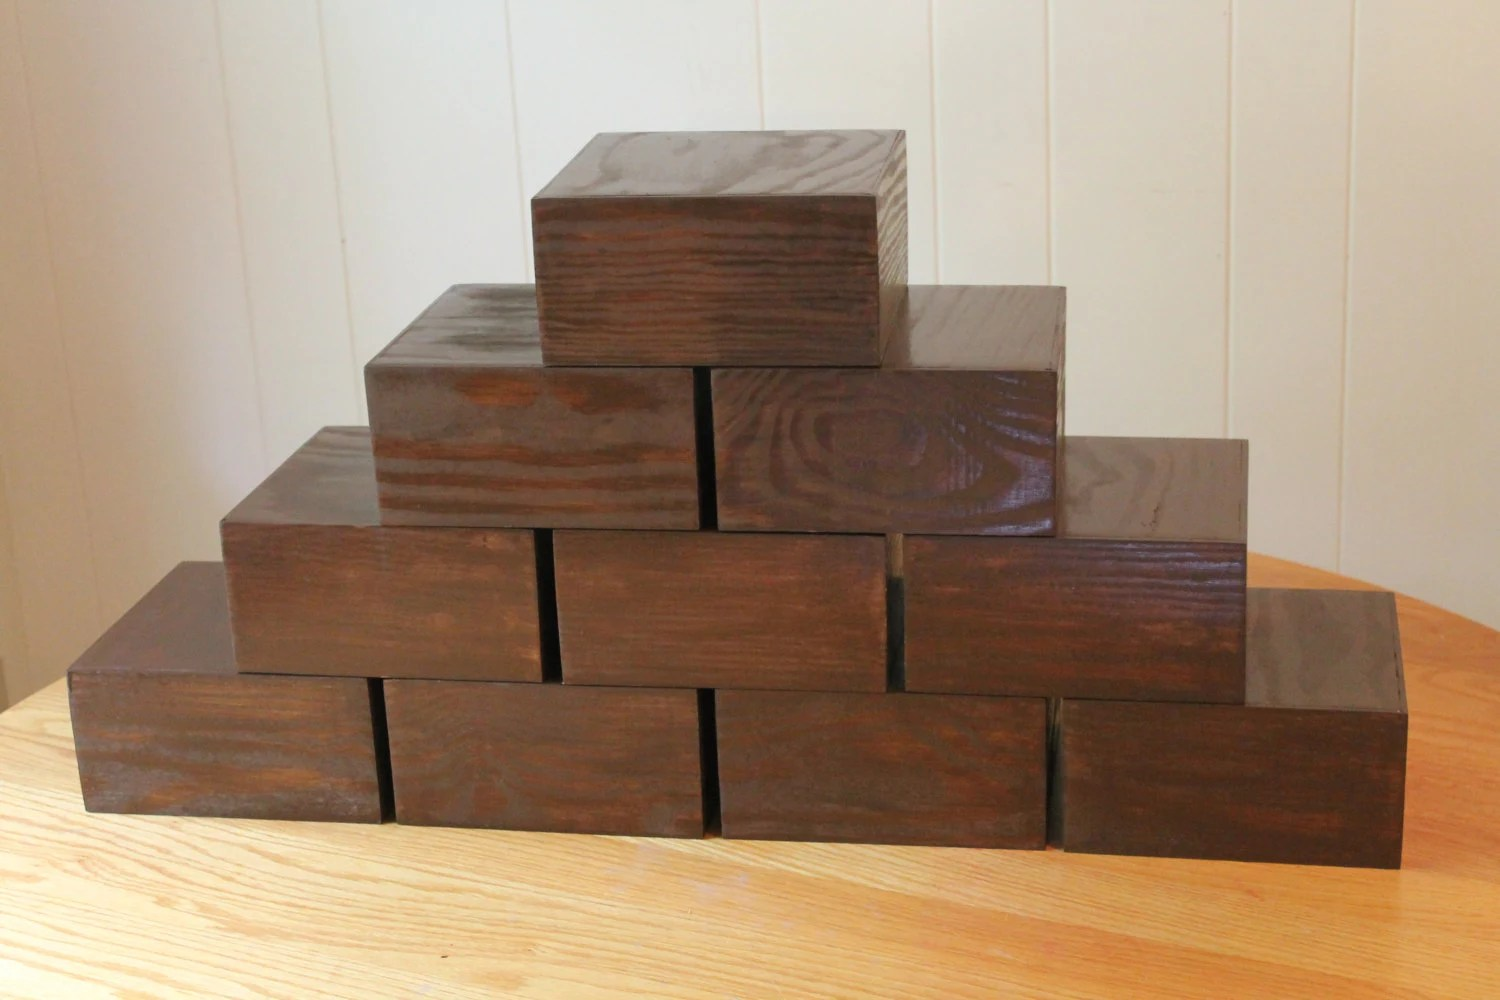 Wooden Stand Plinth Table Centerpiece Riser Box Display Stand